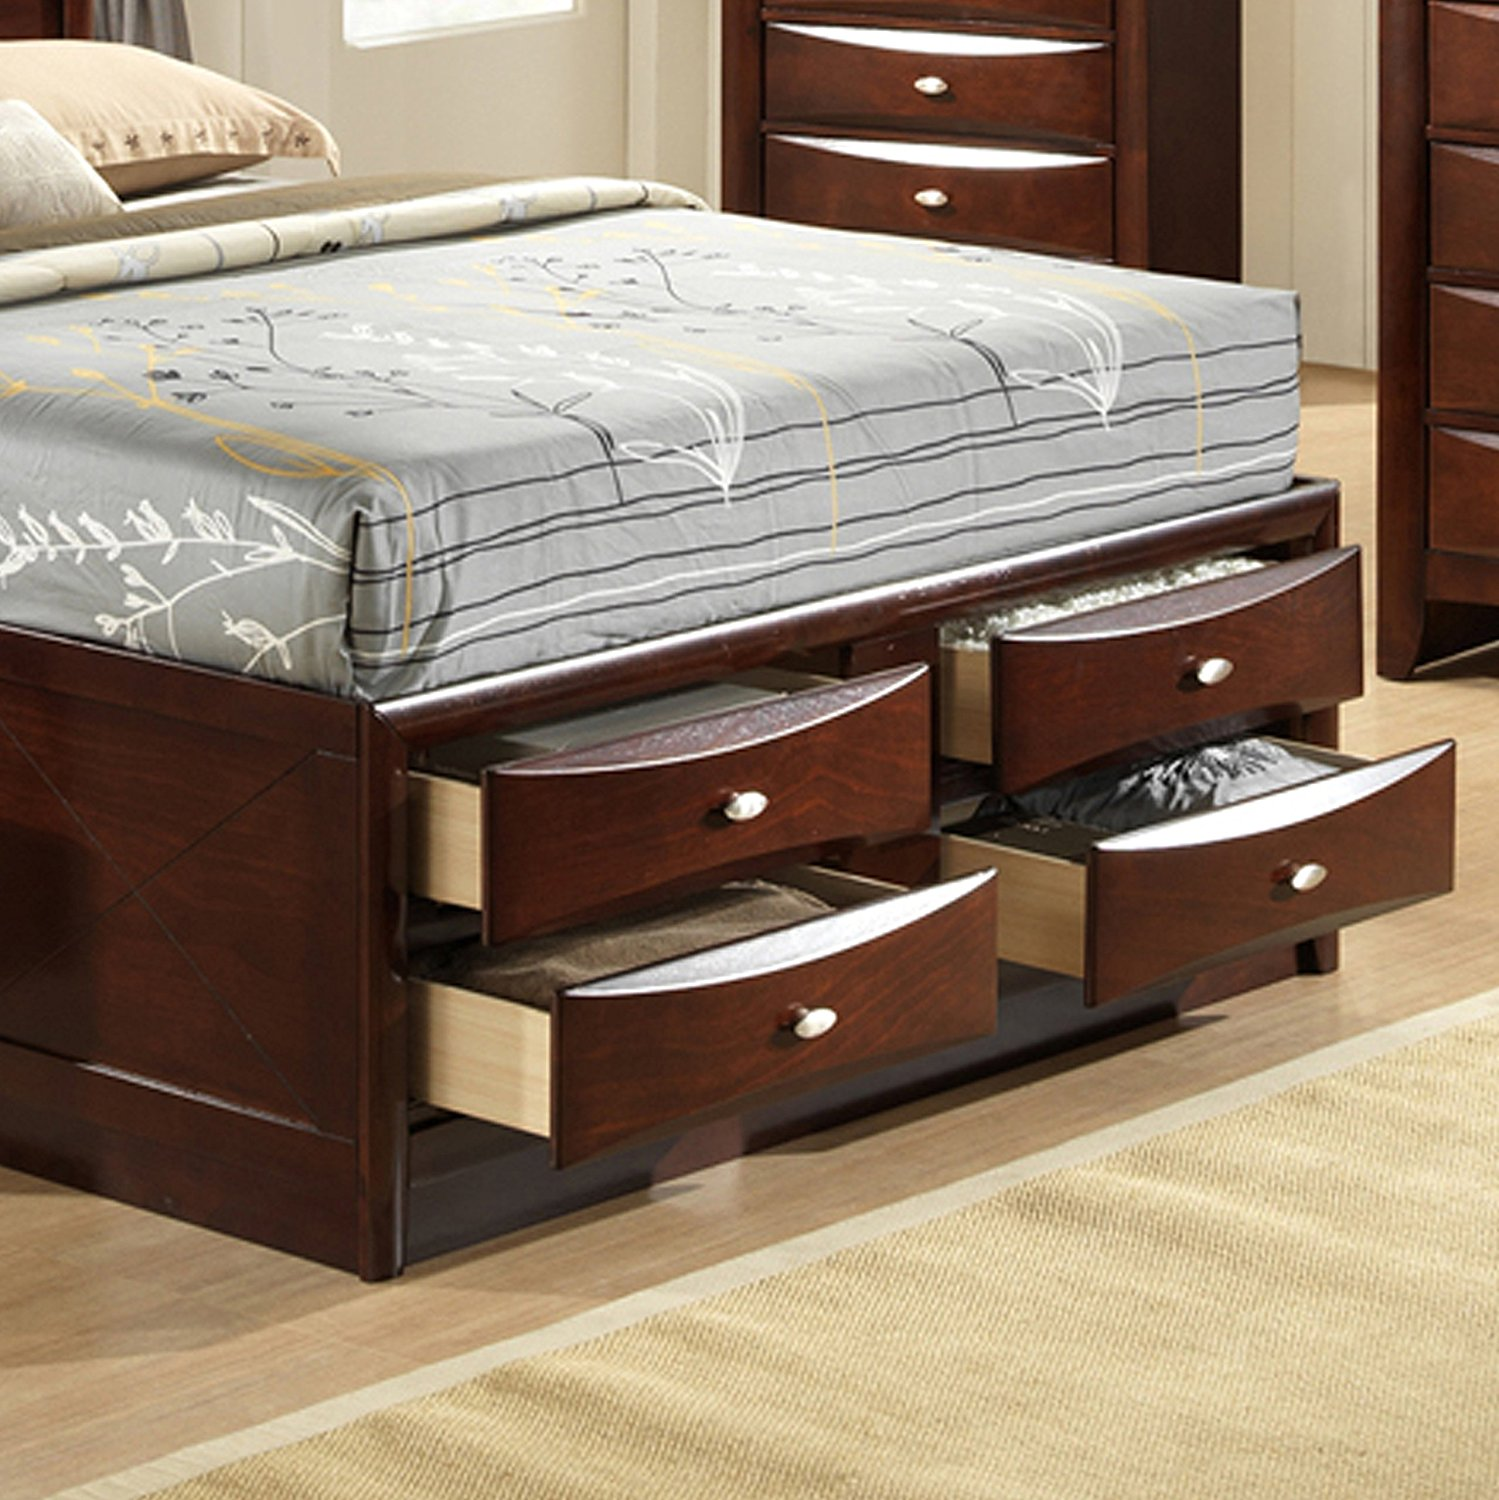 King 6 Drawer Storage Bed